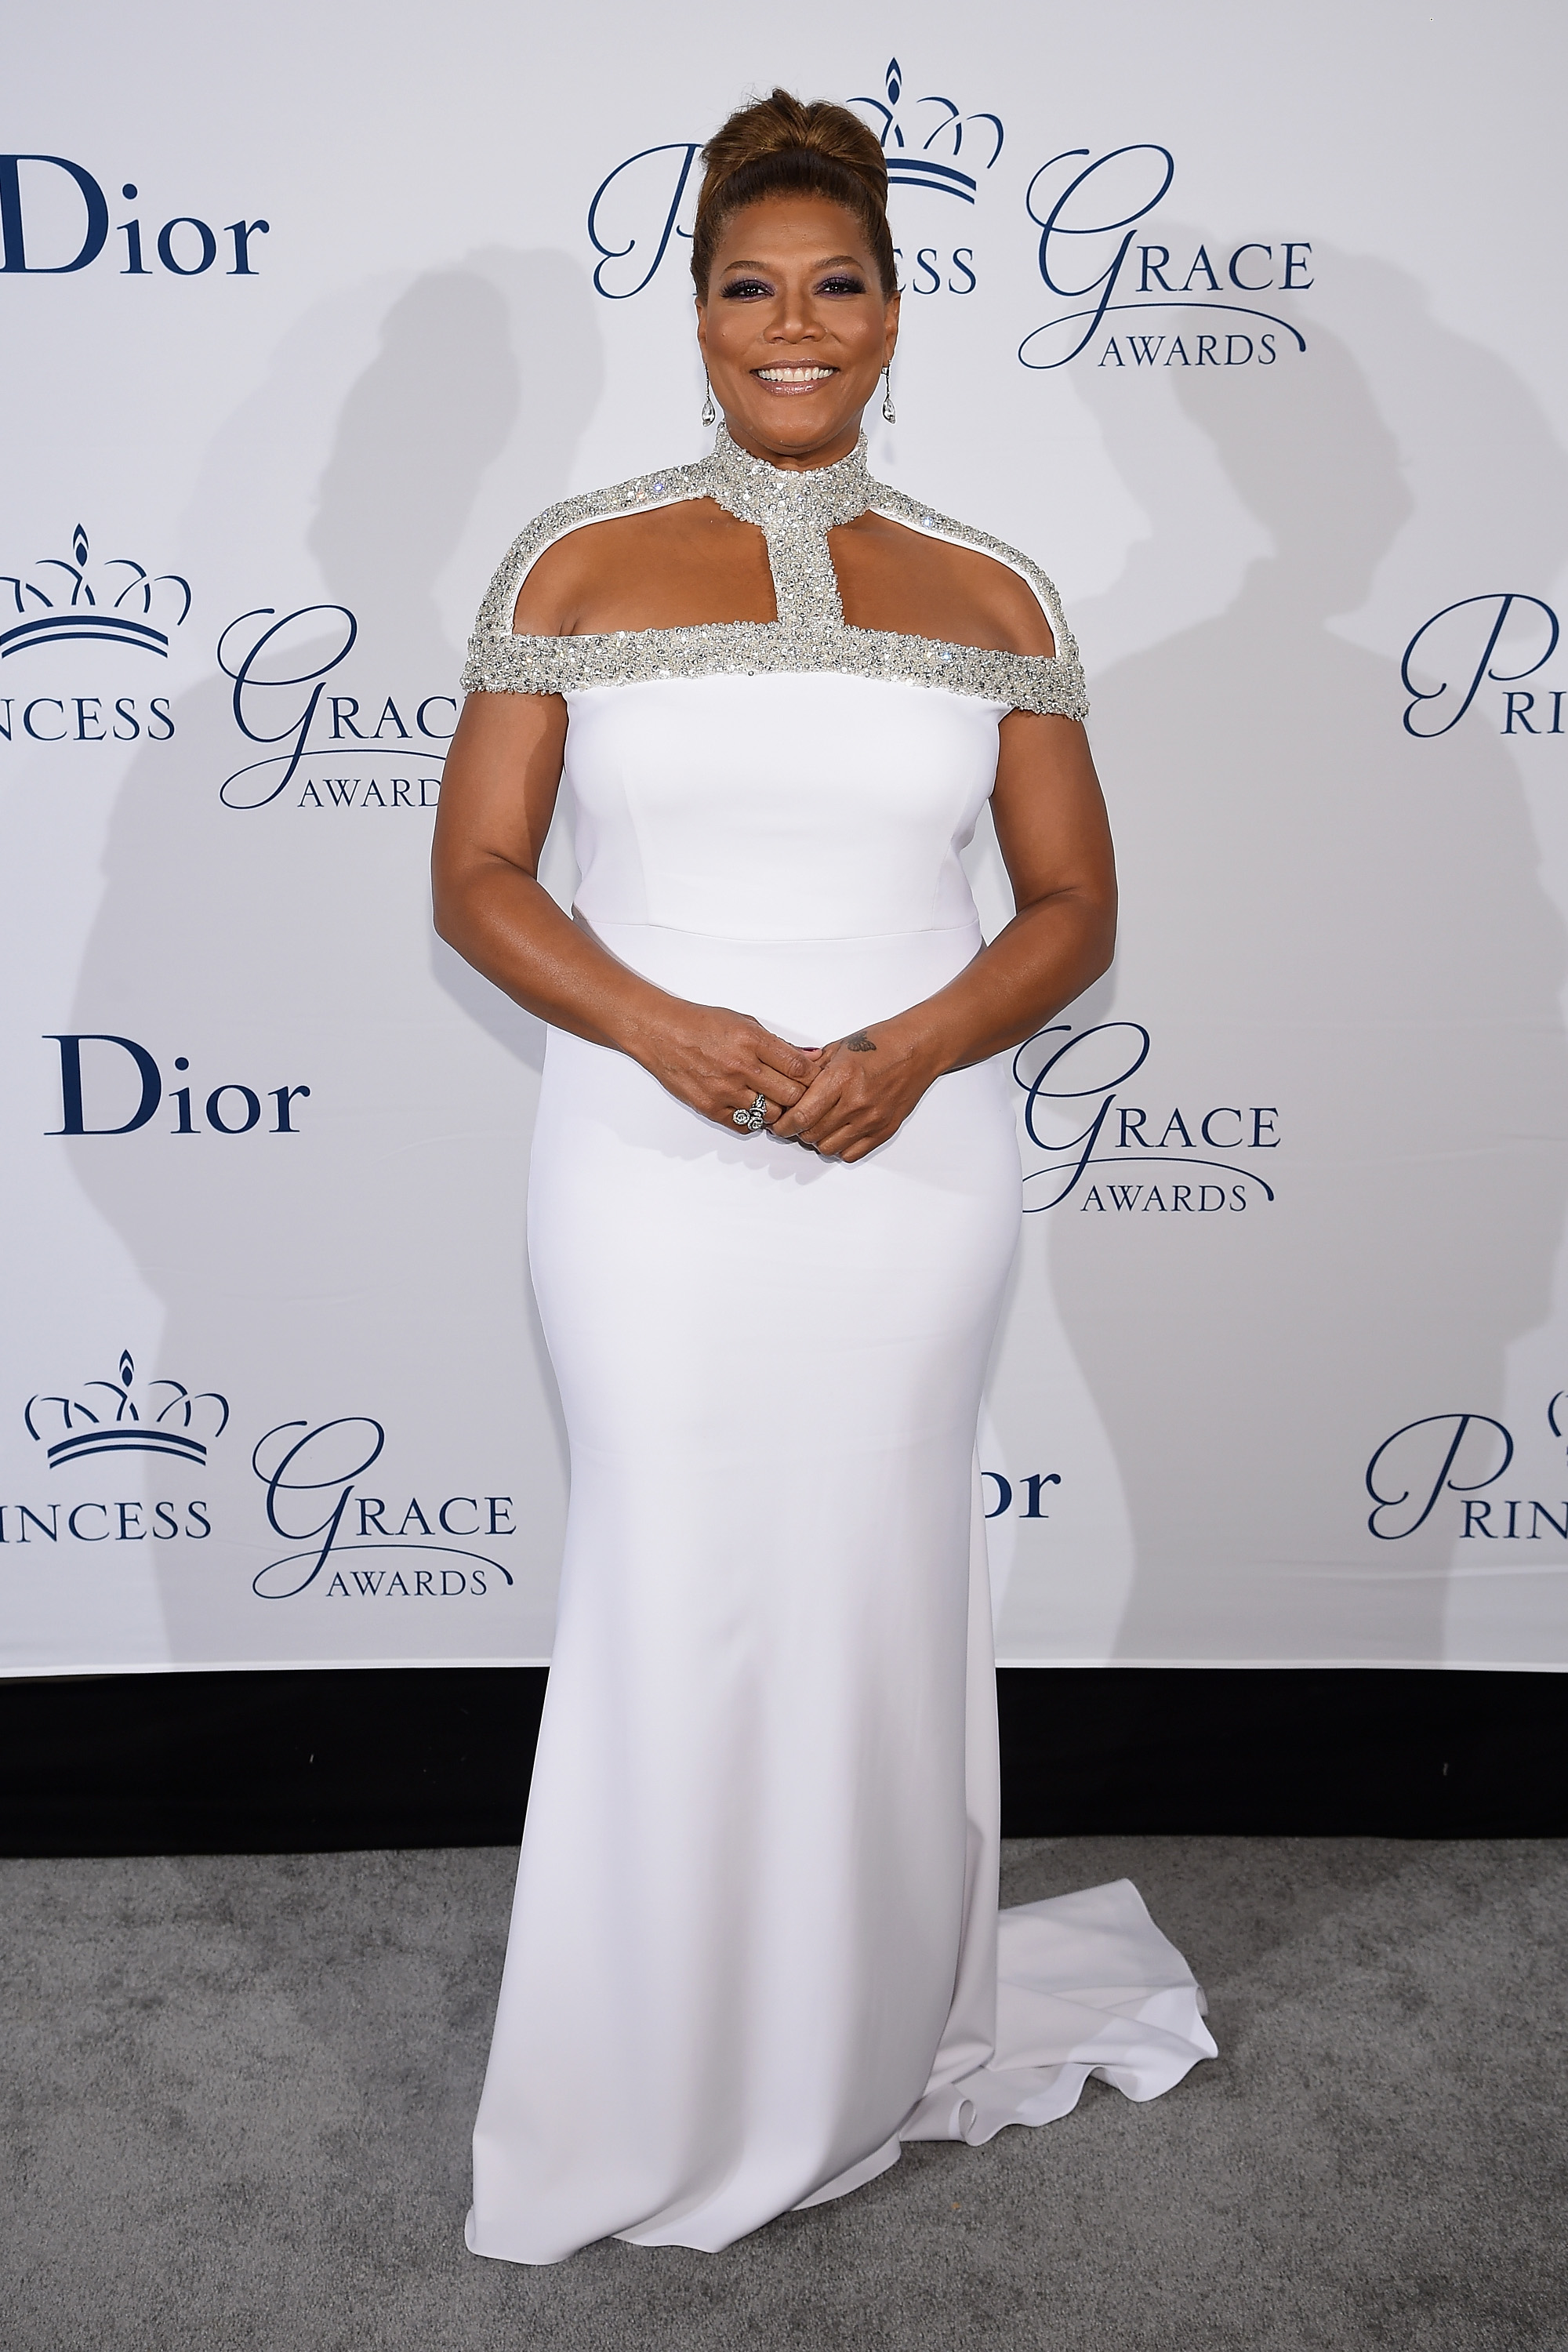 2016 Princess Grace Awards Gala With Presenting Sponsor Christian Dior Couture - Inside